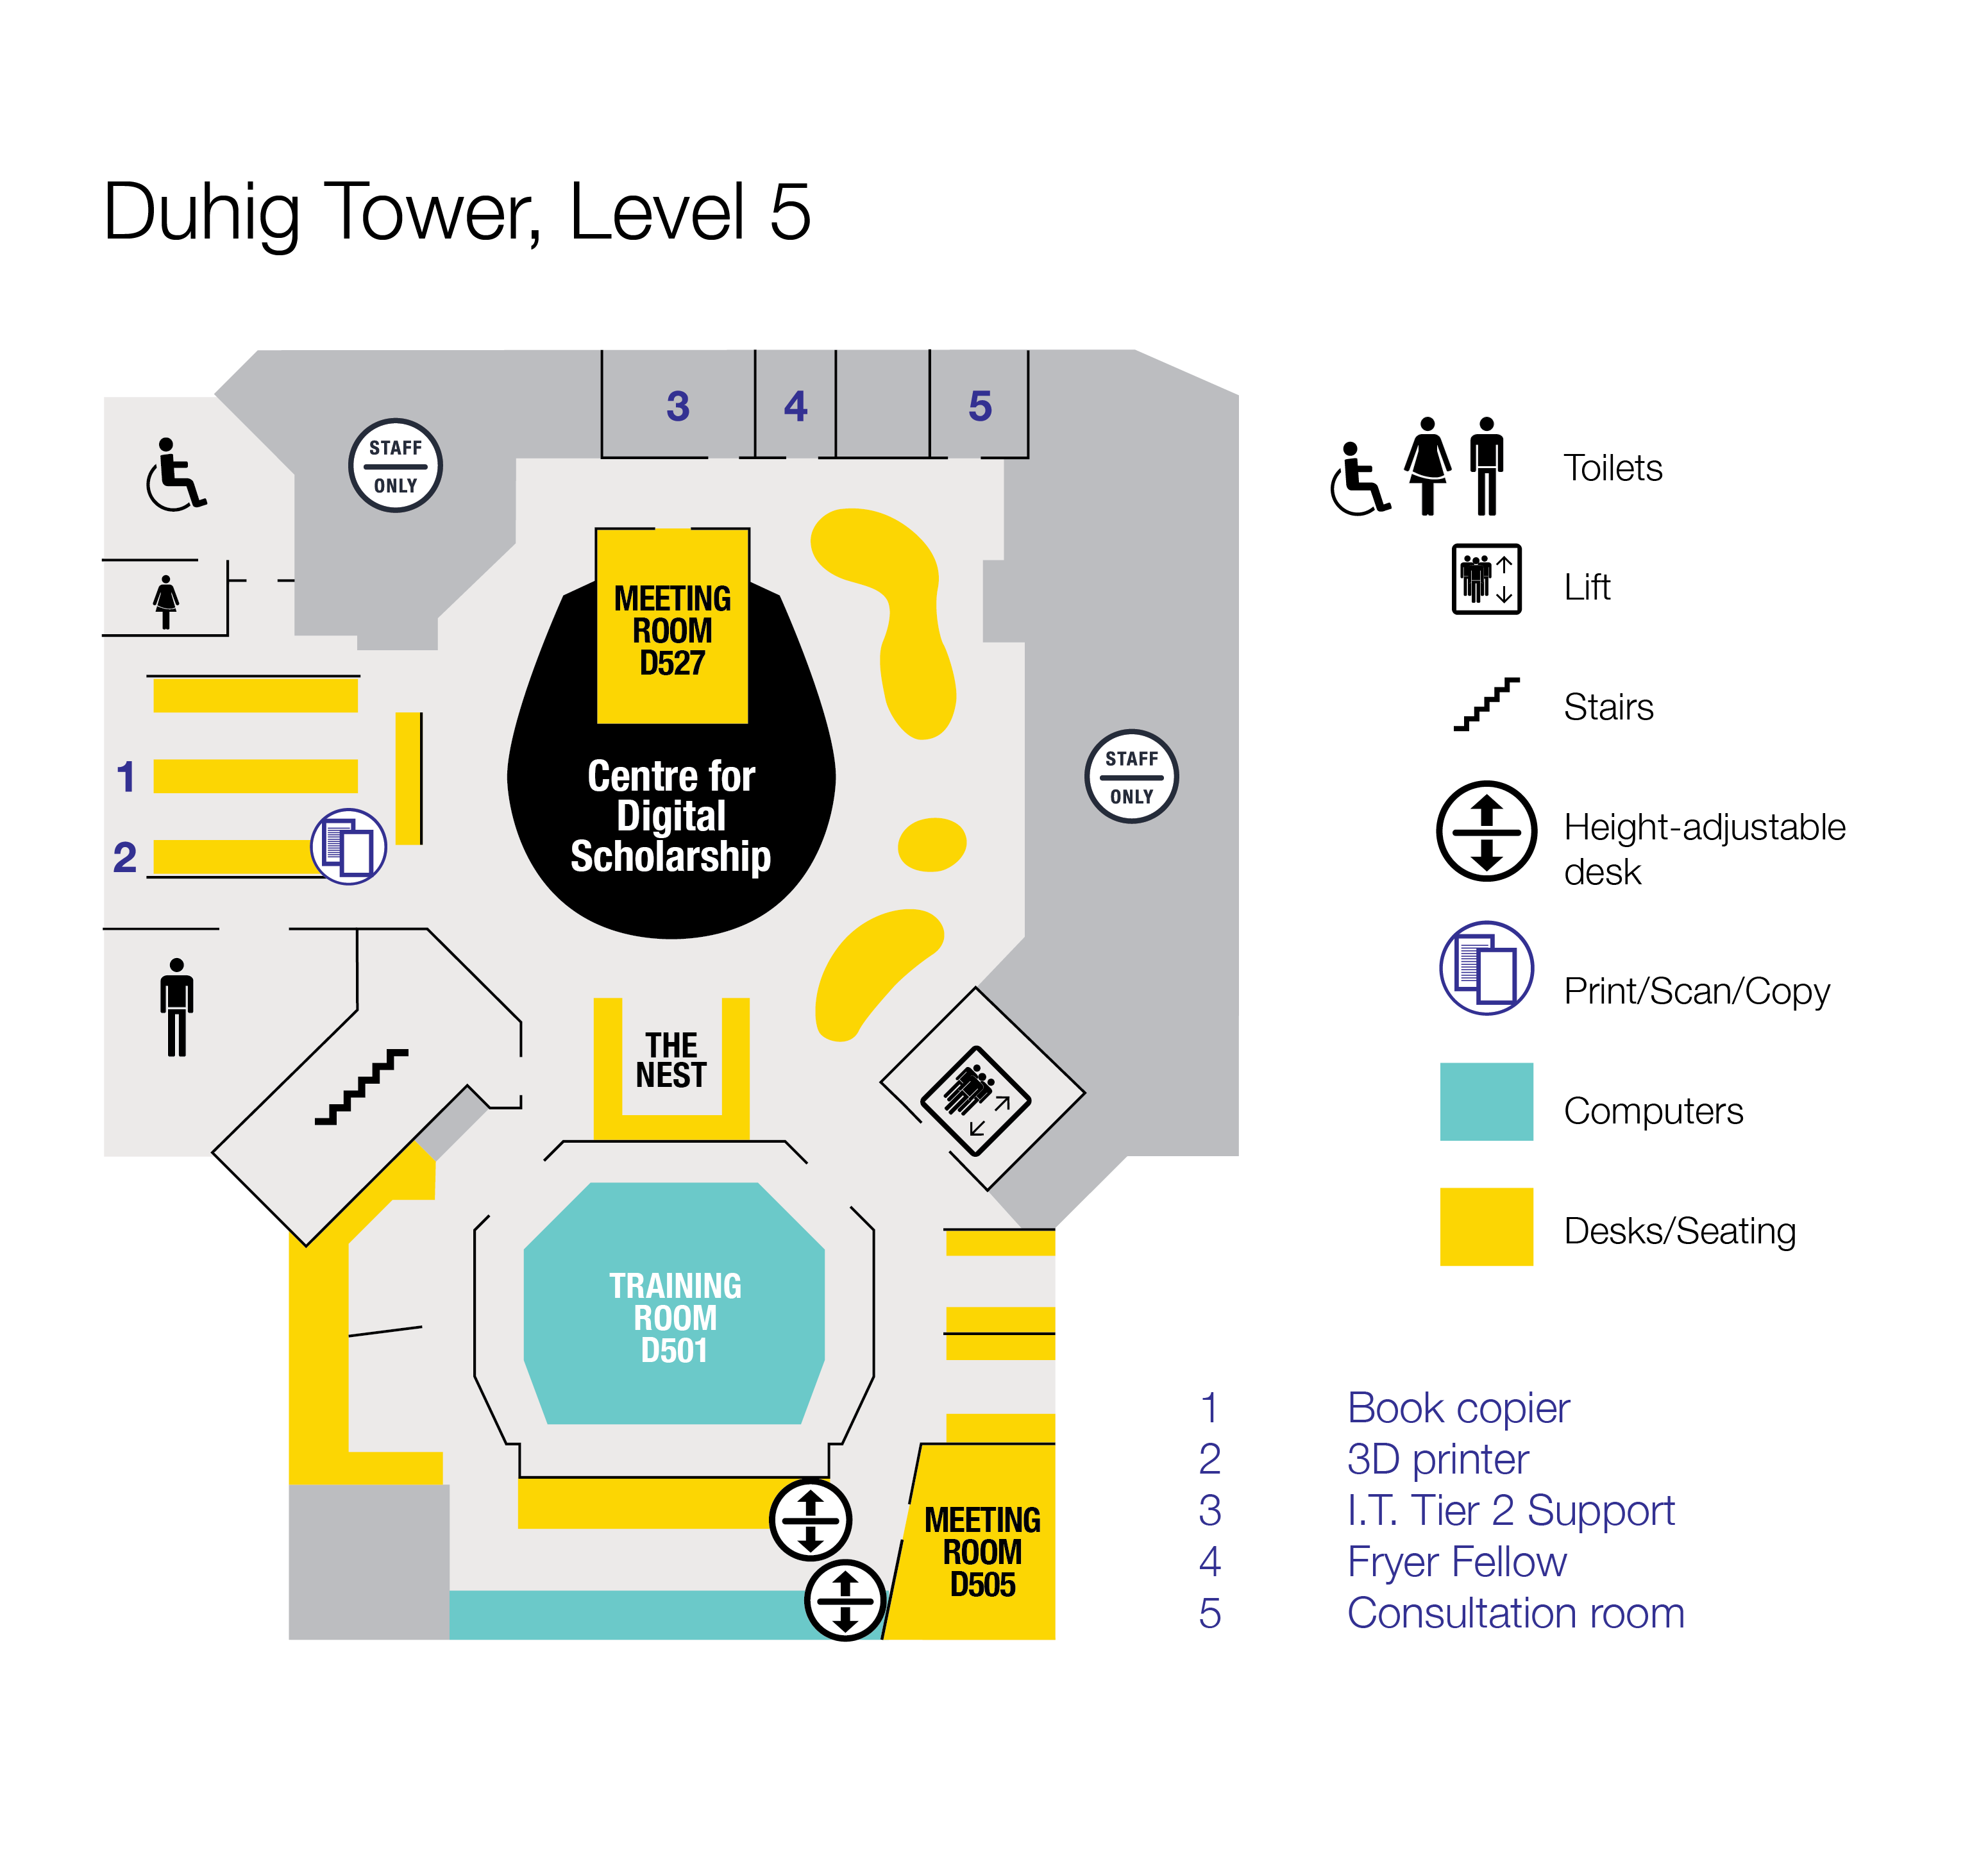 Floor plan Duhig Tower, Level 5